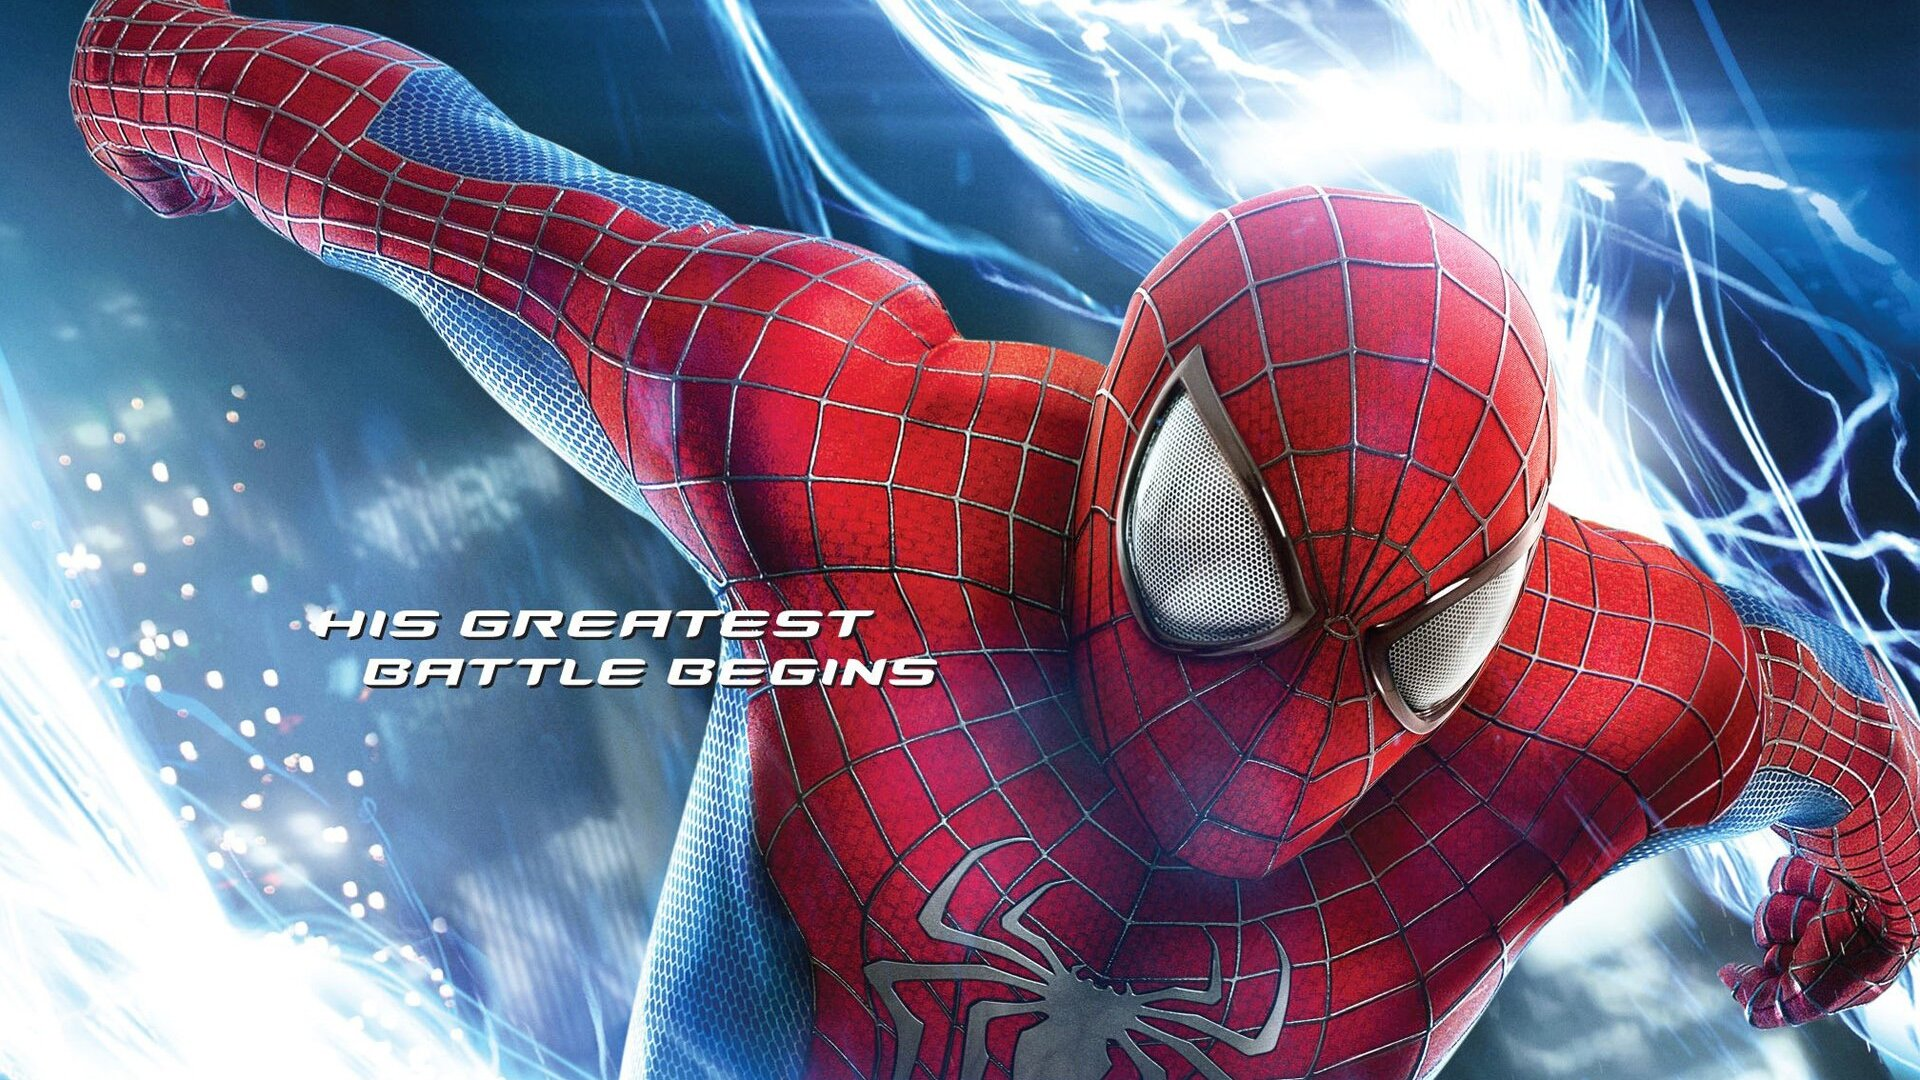 1920x1080 the amazing spider man 2 movie laptop full hd 1080p hd 4k